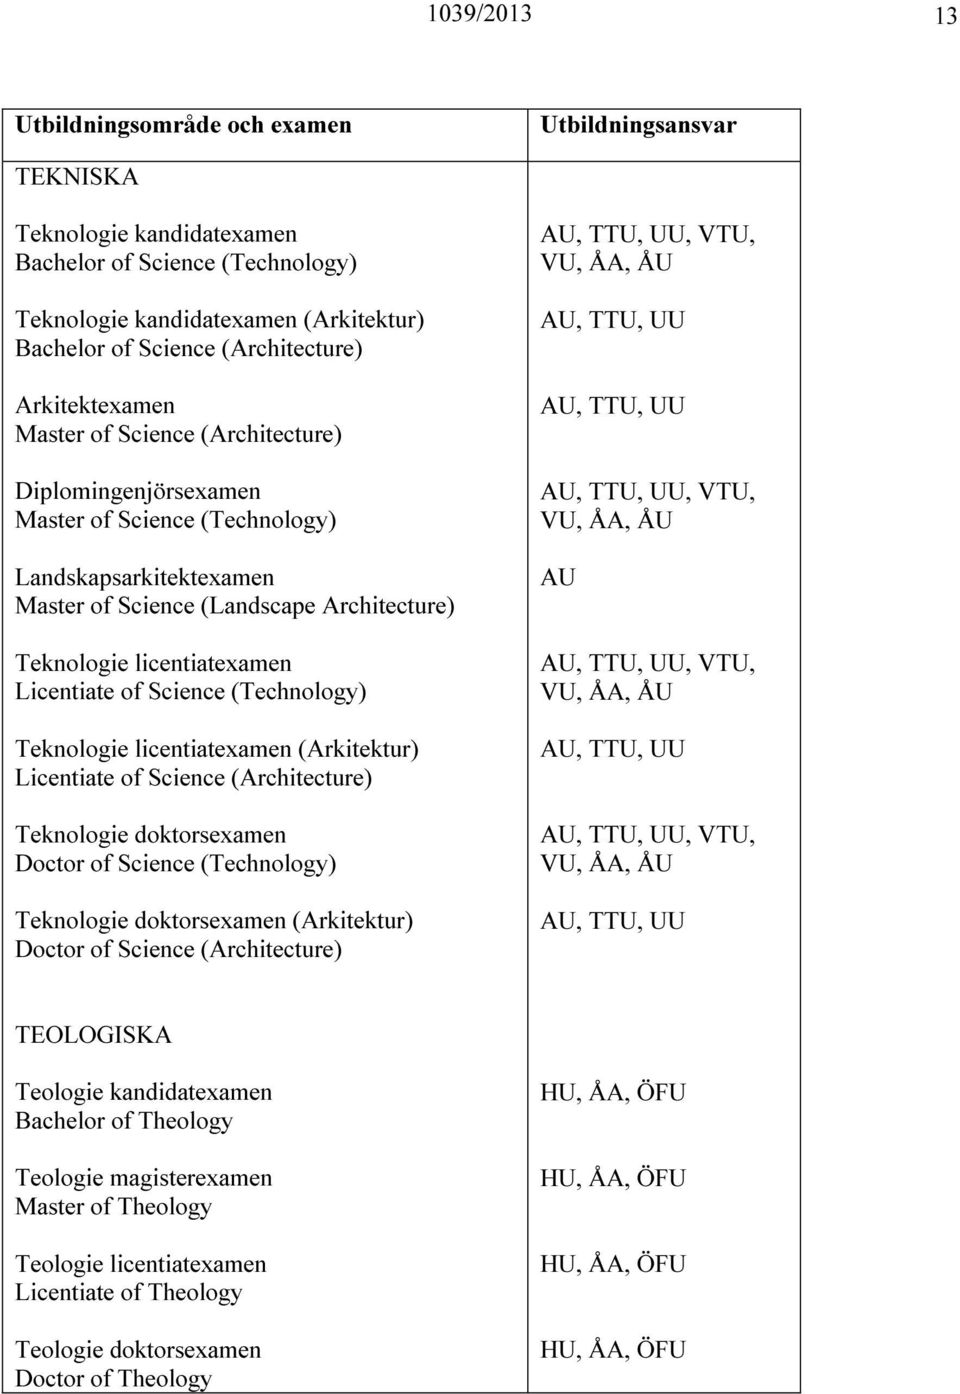 Teknologie licentiatexamen (Arkitektur) Licentiate of Science (Architecture) Teknologie doktorsexamen Doctor of Science (Technology) Teknologie doktorsexamen (Arkitektur) Doctor of Science